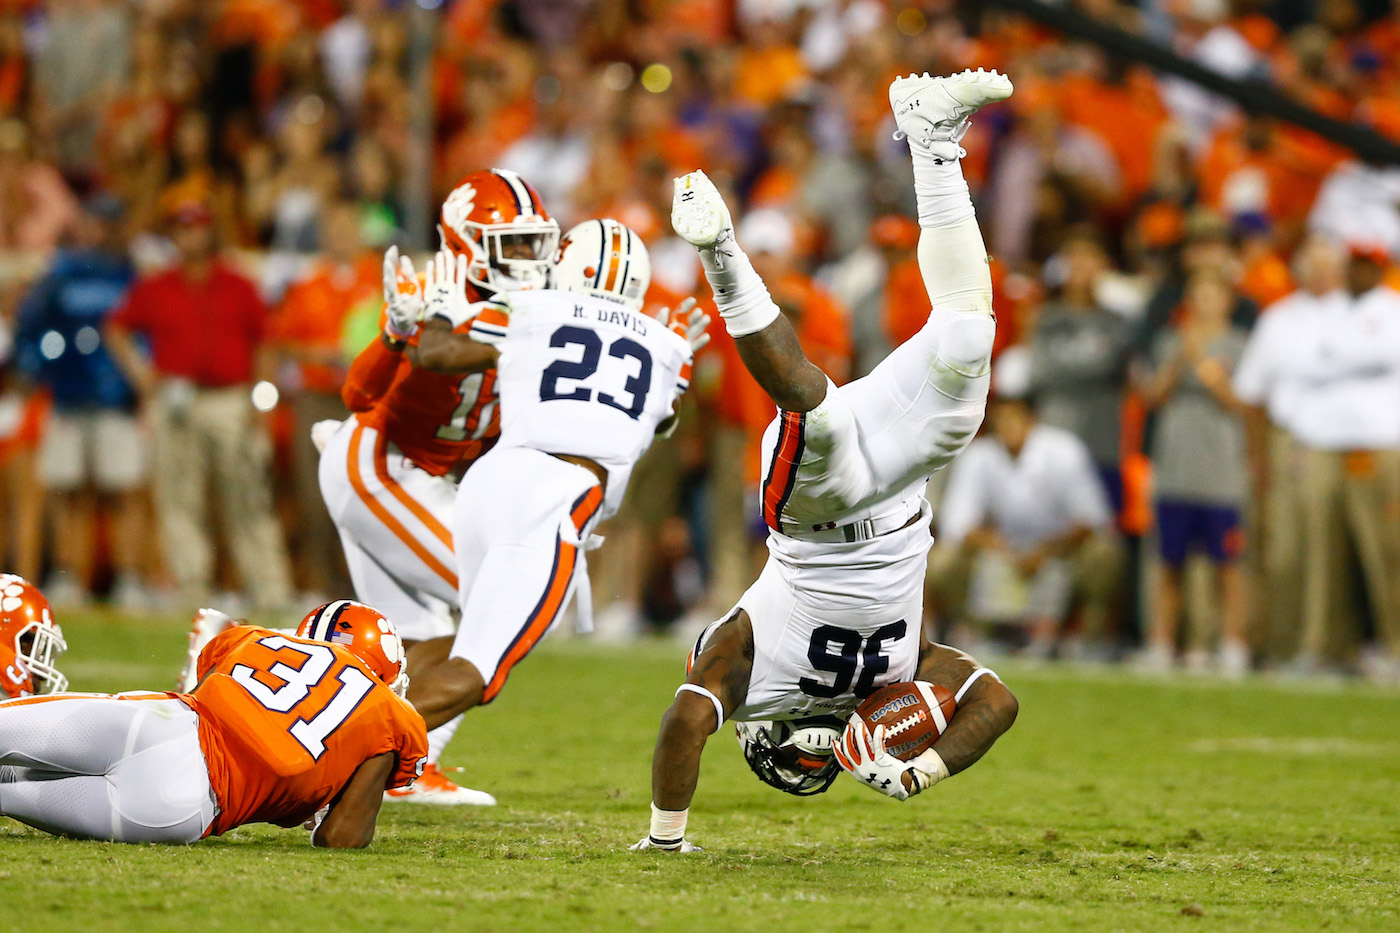 Pettway's 3TD performance pushes No. 15 Auburn past Mercer